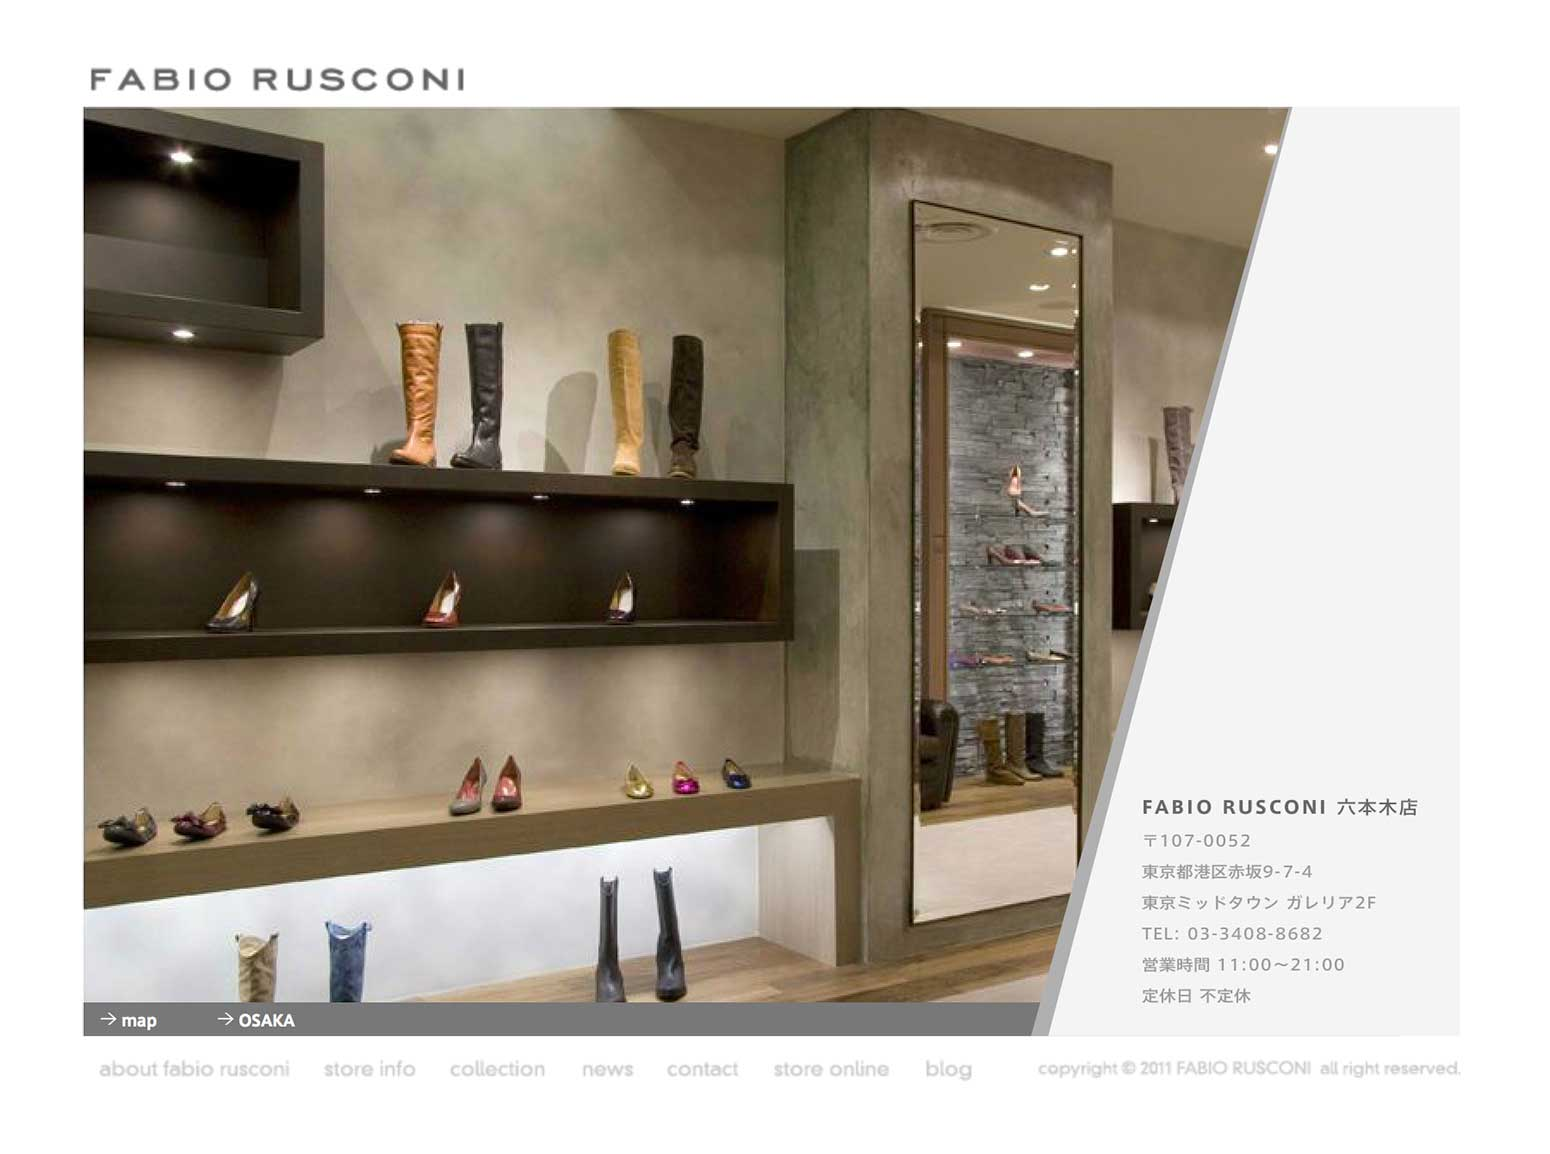 Fabio Rusconi Official Site